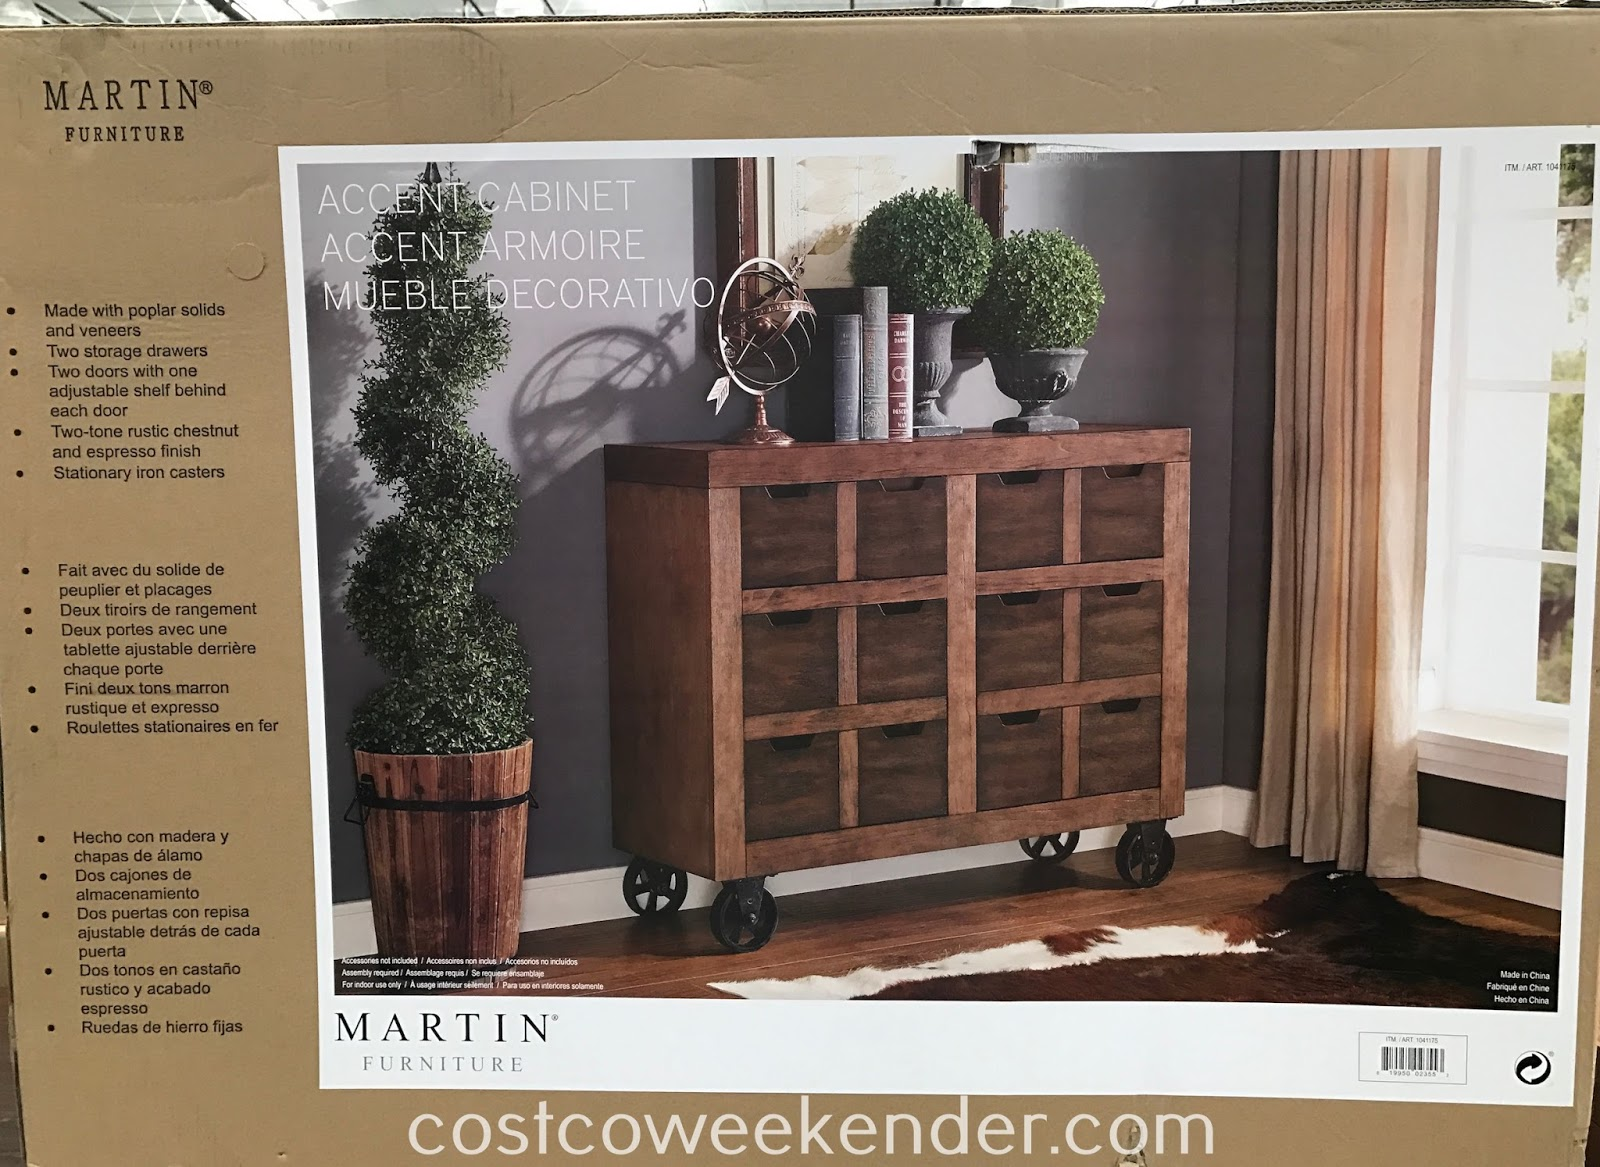 martin furniture accent cabinet weekender tablette versatile that feels home just turned legs ashley end tables coffee blue metal table rose gold bedside small glass mirrored